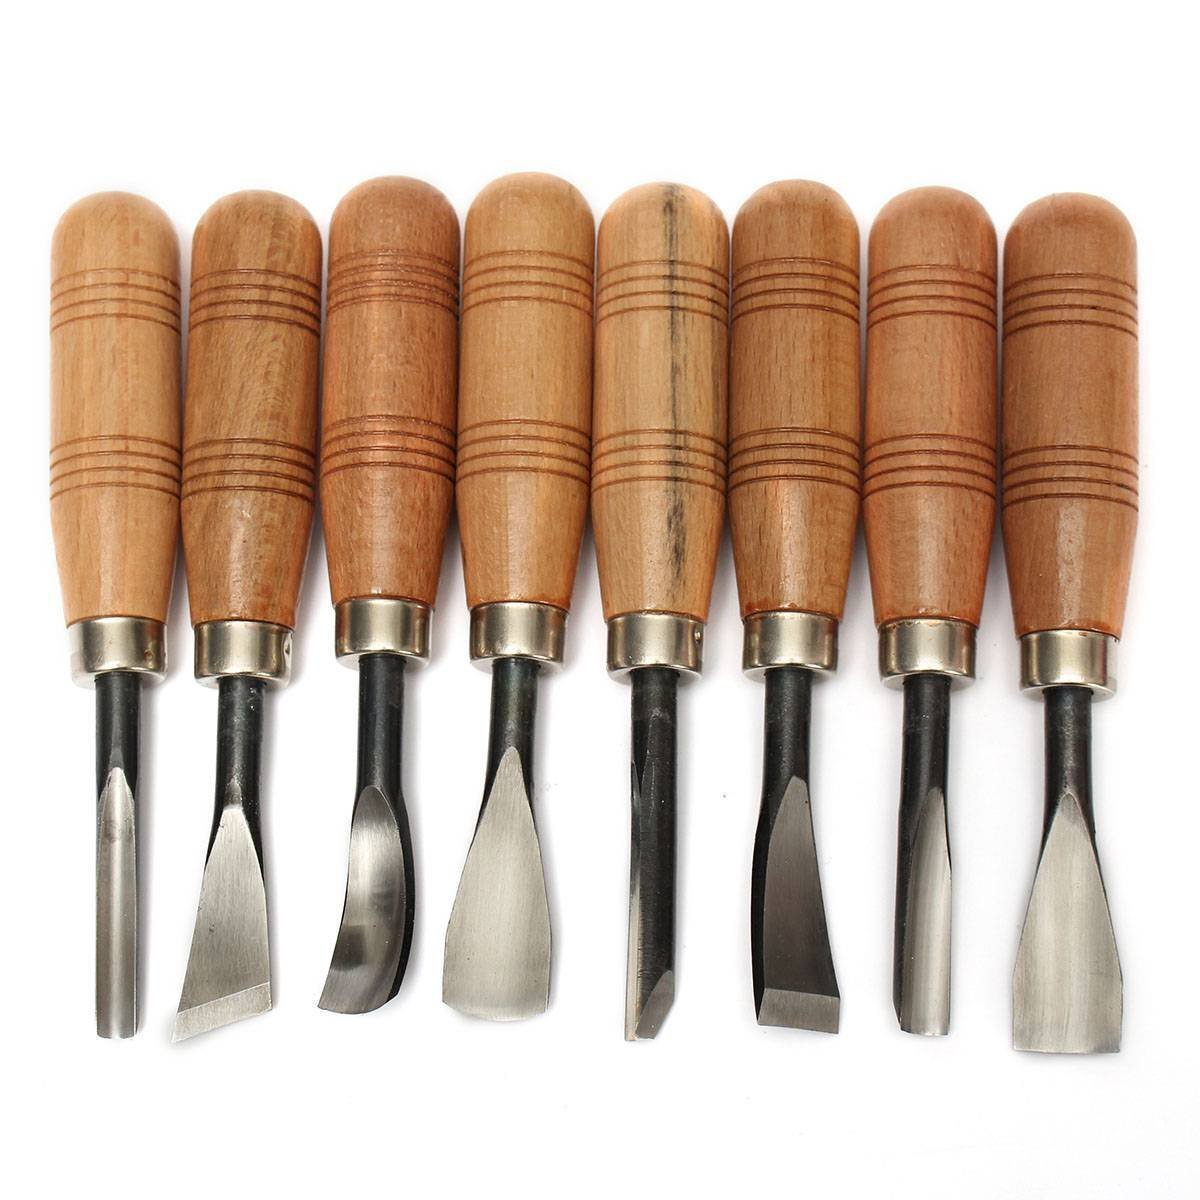 Wood Sculpture Carving Chisel Tool Set DIY Art Craft(8 Pcs) EVINIS